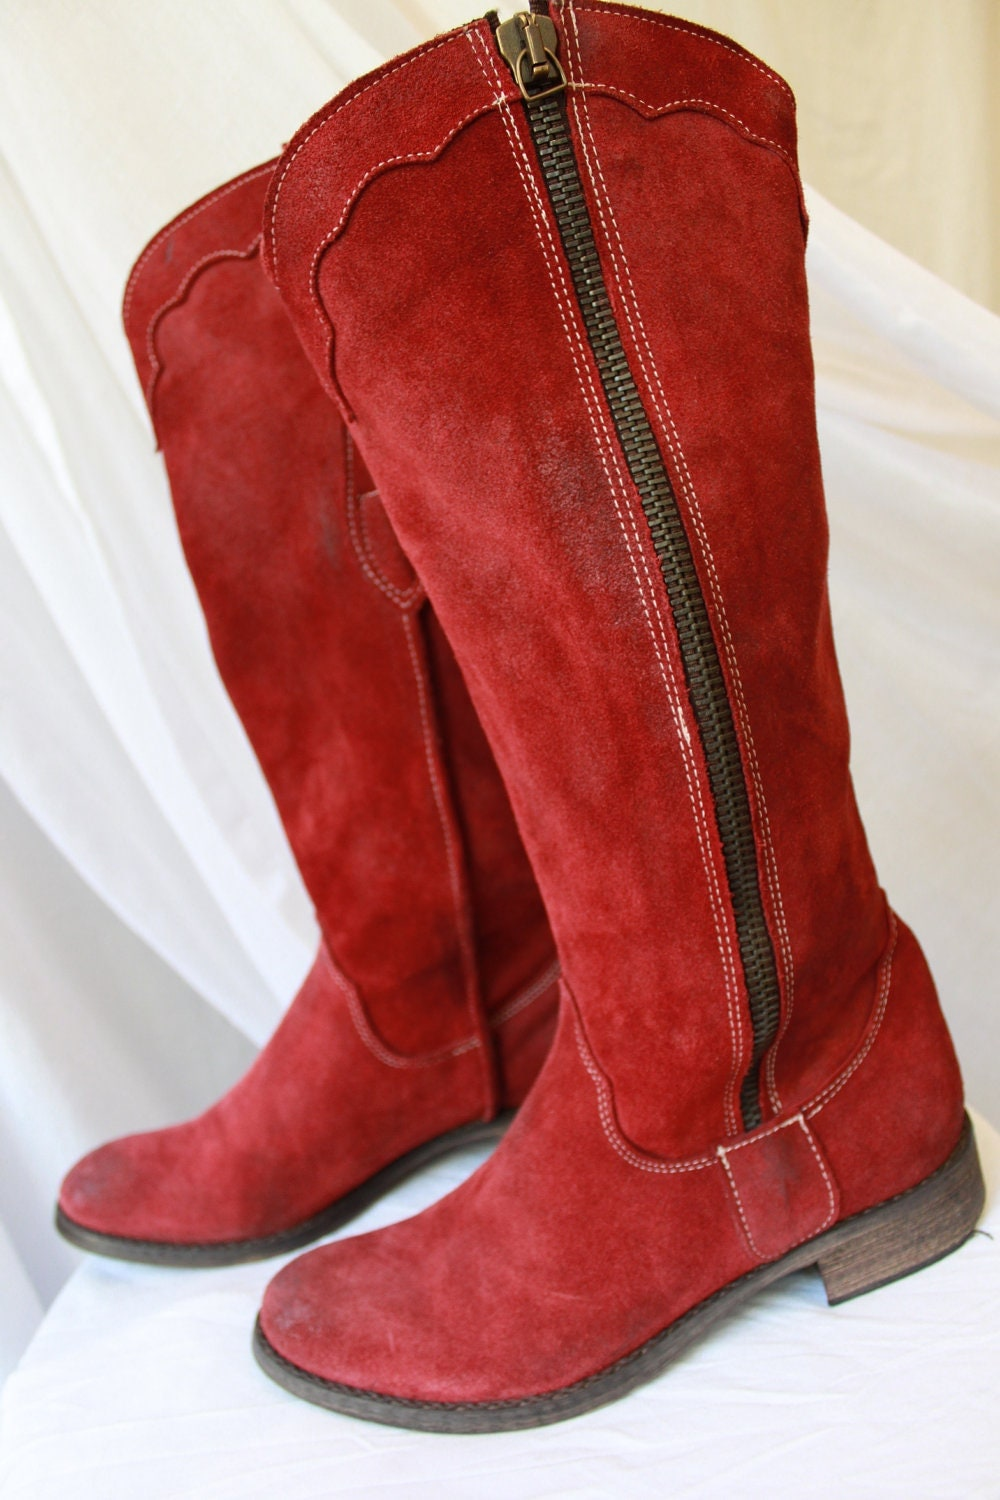 Awesome WOMENS TUK SHOES RED ANARCHIC LEATHER 7-EYE LACE UP CHUNKY ANKLE BOOTS SIZE 3-8 | EBay